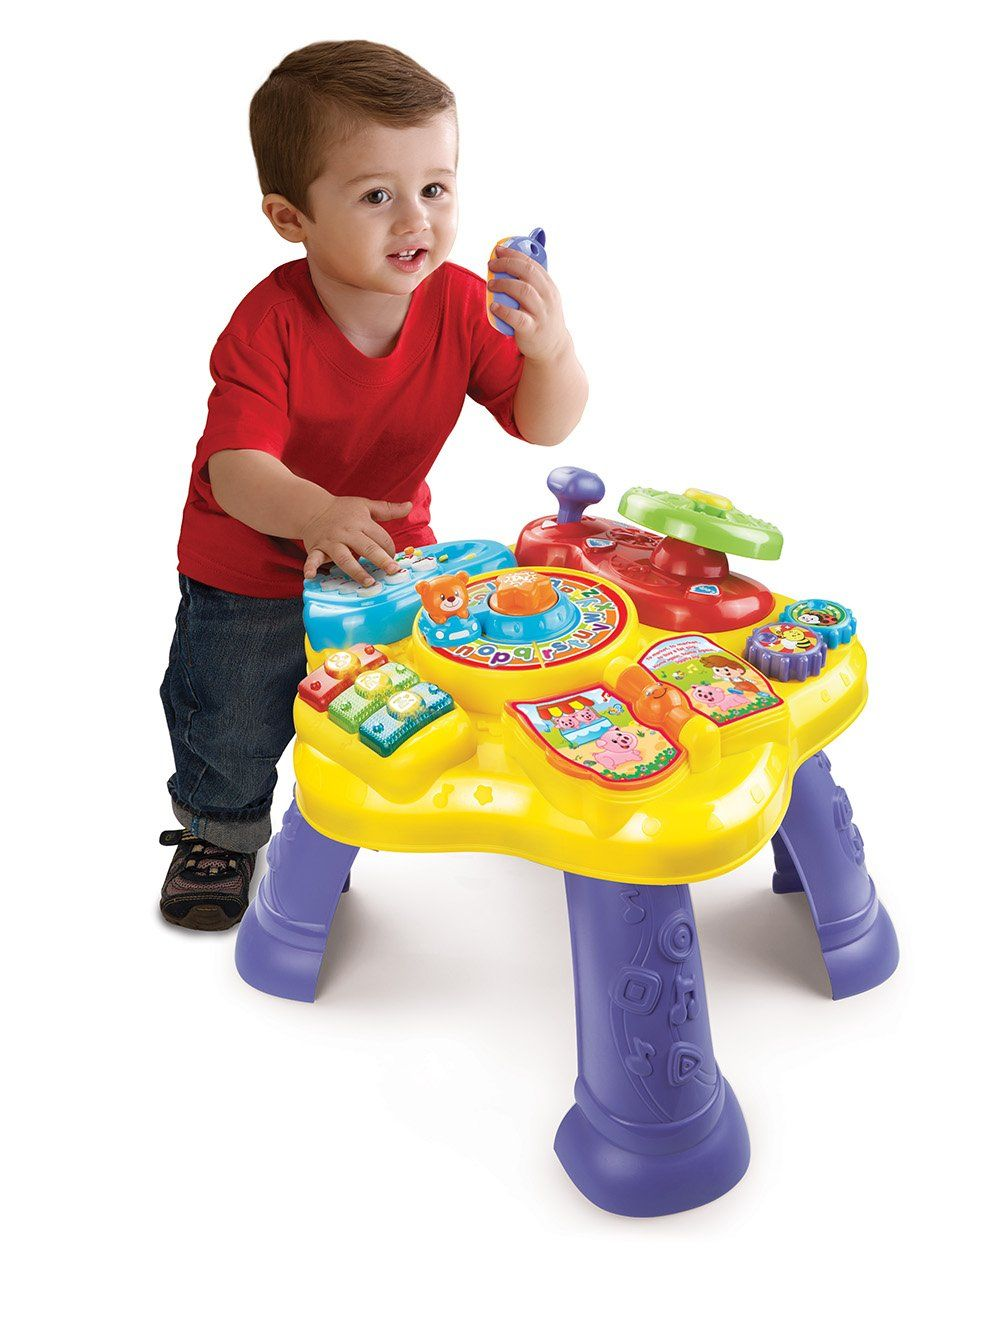 Amazon.com: VTech Magic Star Learning Table: Toys & Games ...